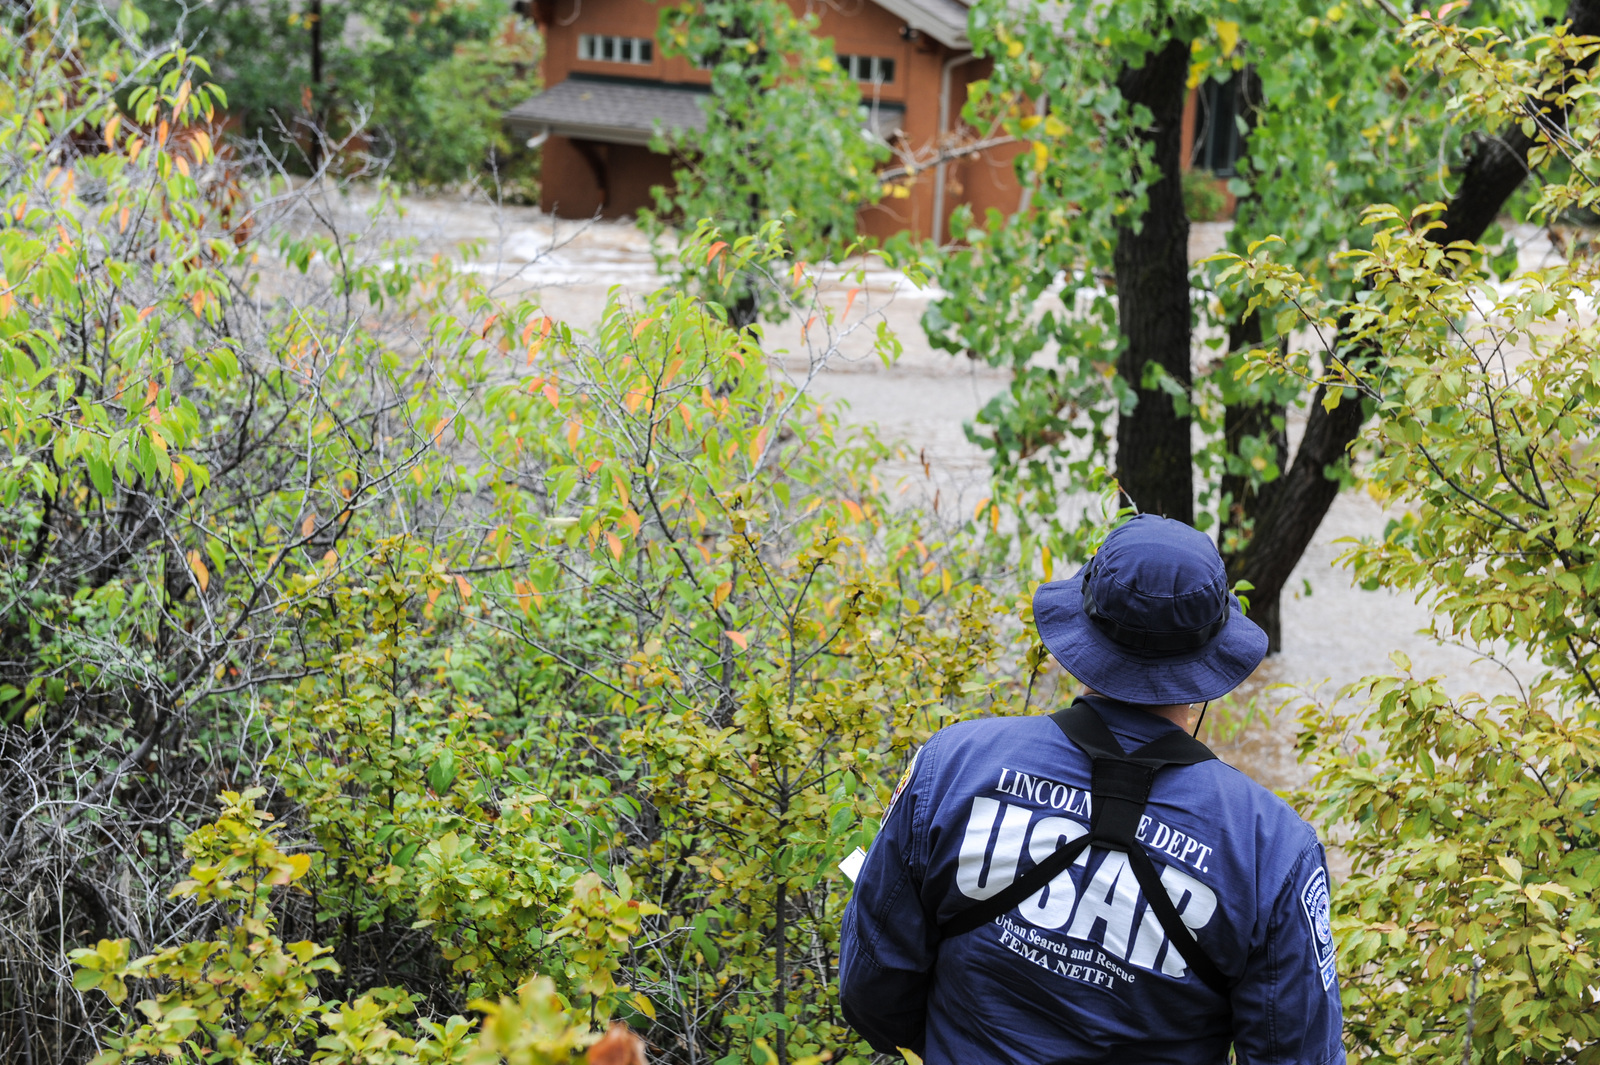 Boulder, Colo., Sep. 16, 2013 -- FEMA's Urban Search and Rescue (USAR) conduct door to door checks in left hand canyon Photo by Michael Rieger/FEMA